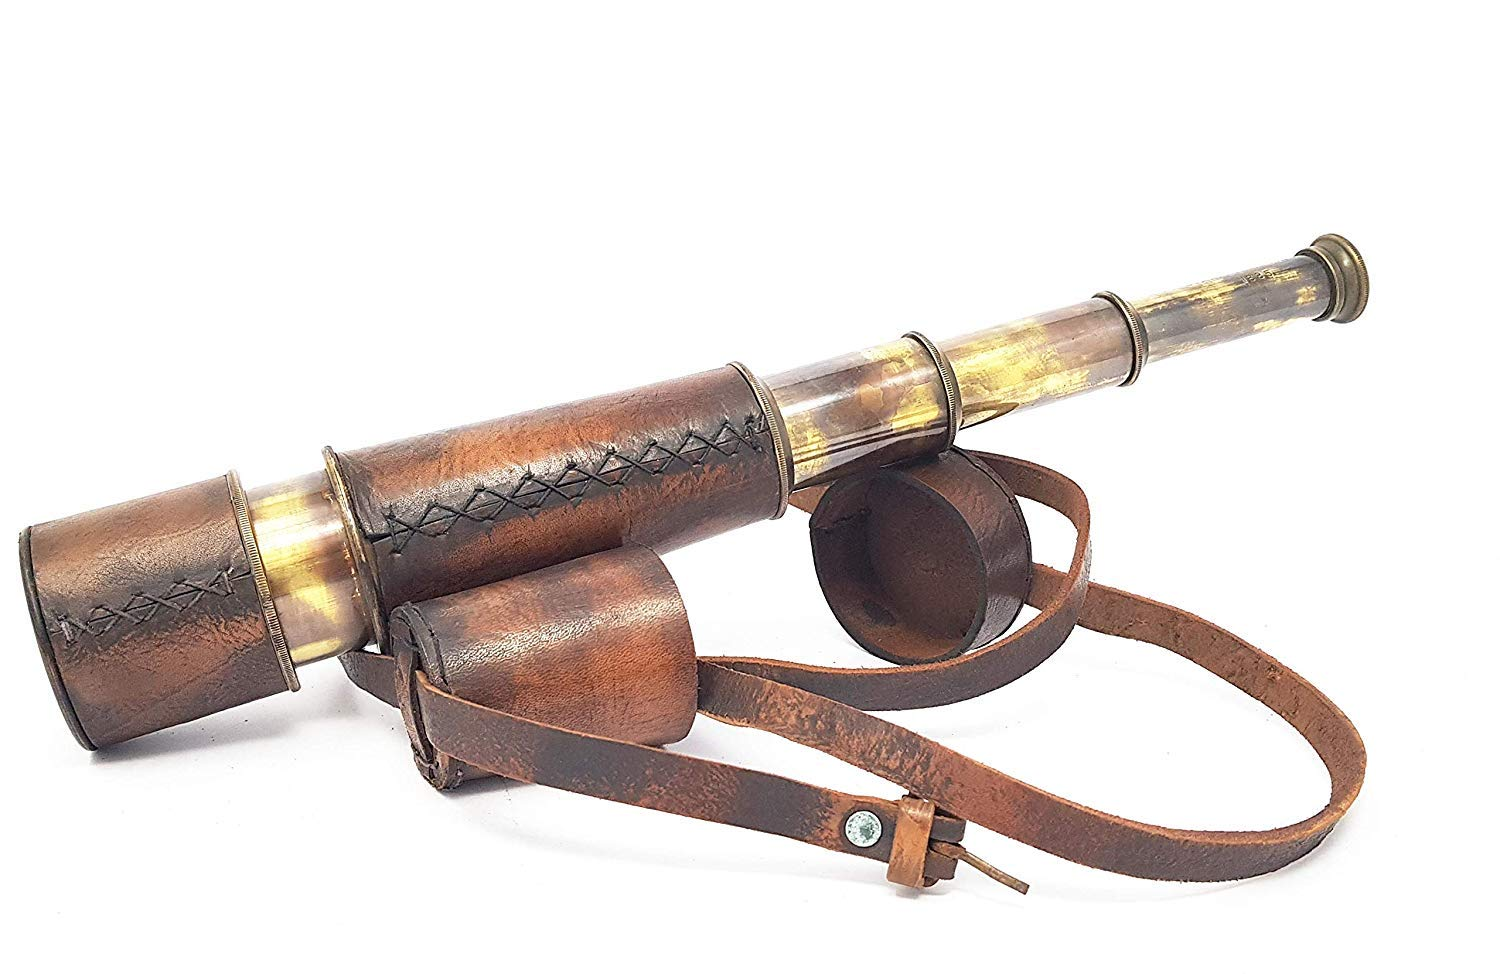 CollectiblesBuy Antique Nautical Pirate Spyglass Handheld Brass Telescope Leather Encased Carry Belt with 3 Brass Anchor by CollectiblesBuy